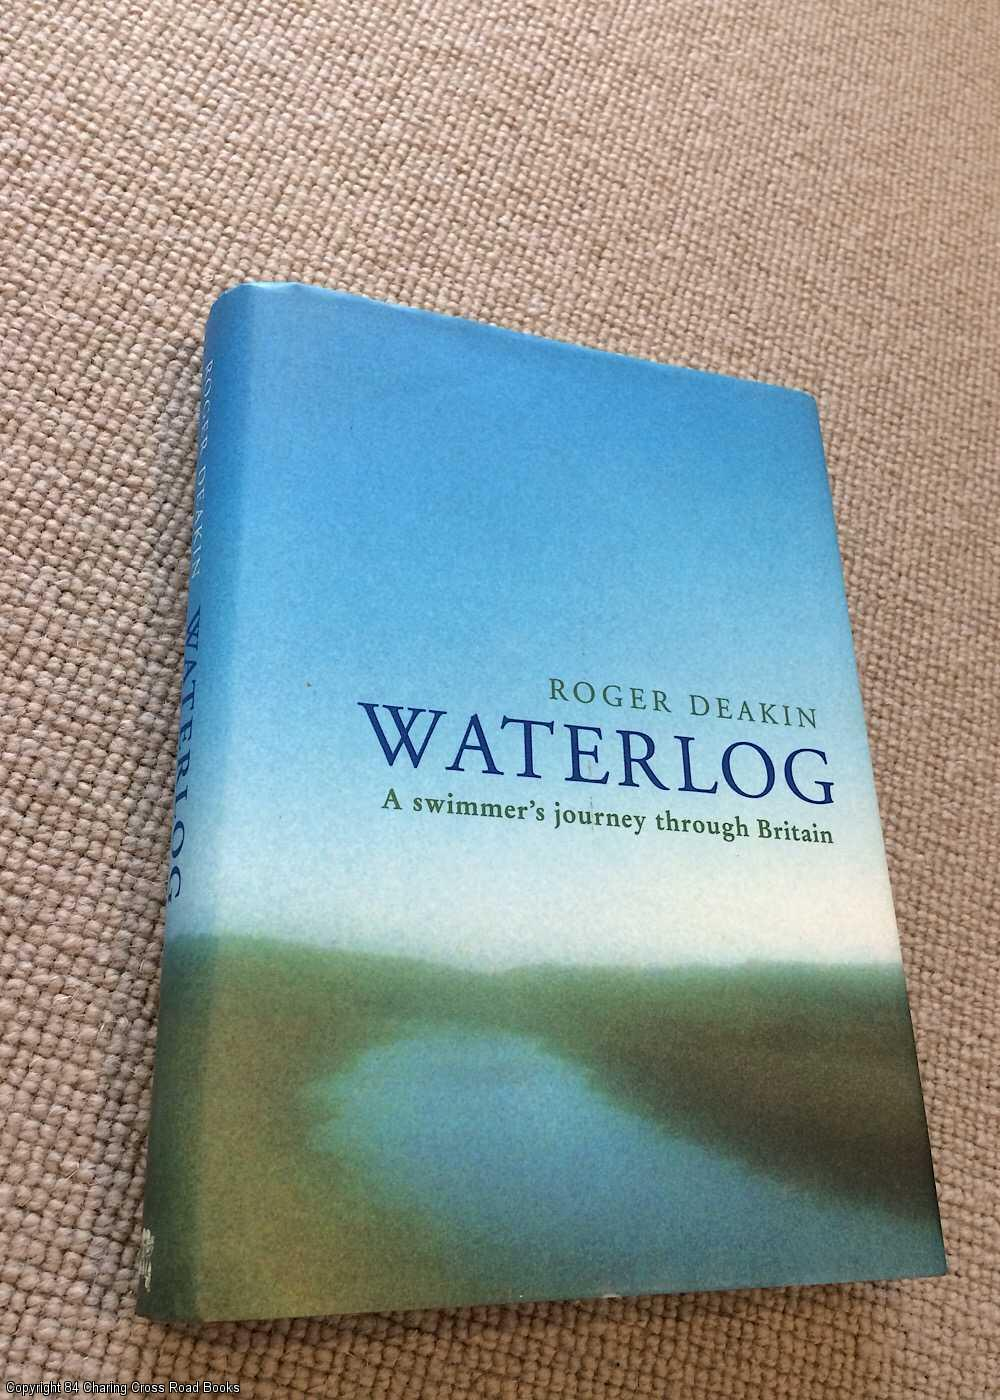 DEAKIN, ROGER - Waterlog: A Swimmer's Journey Through Britain